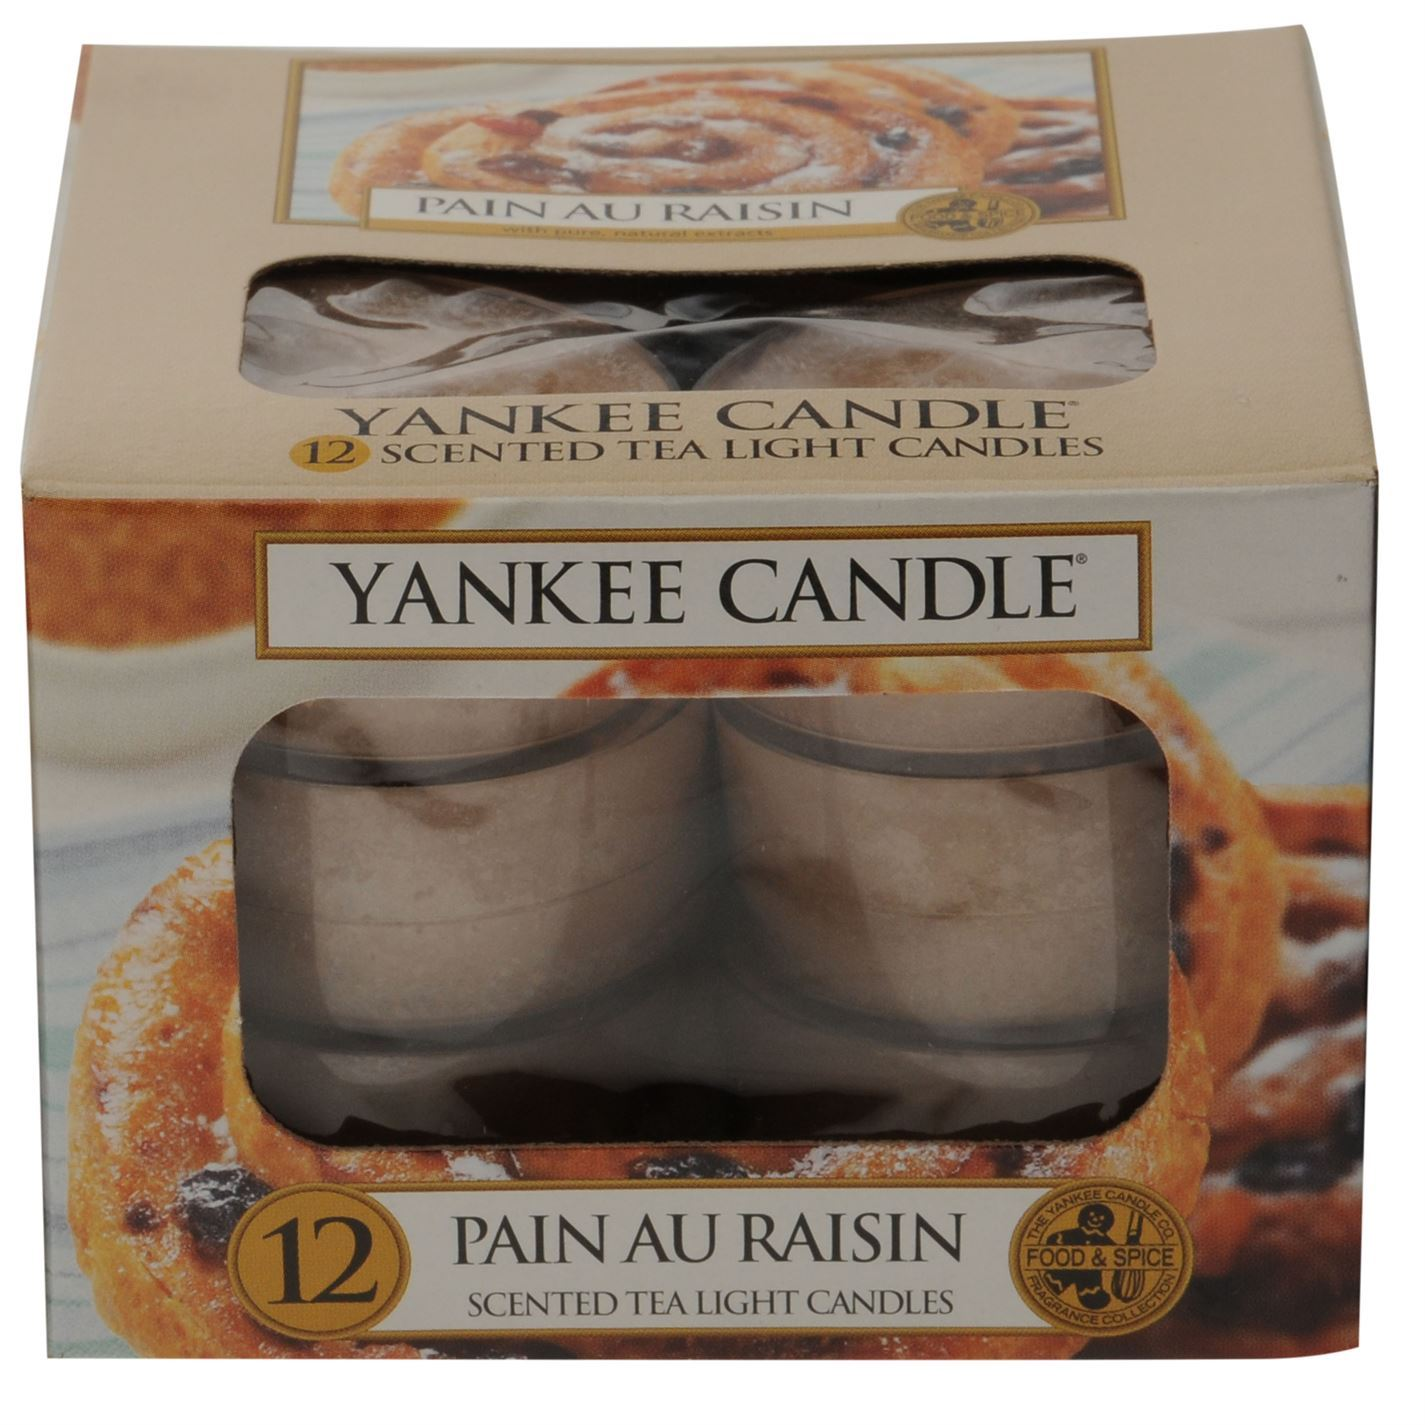 Details about Yankee Candle Tea Lights 12 Pack Scented Candles Home  Accessories